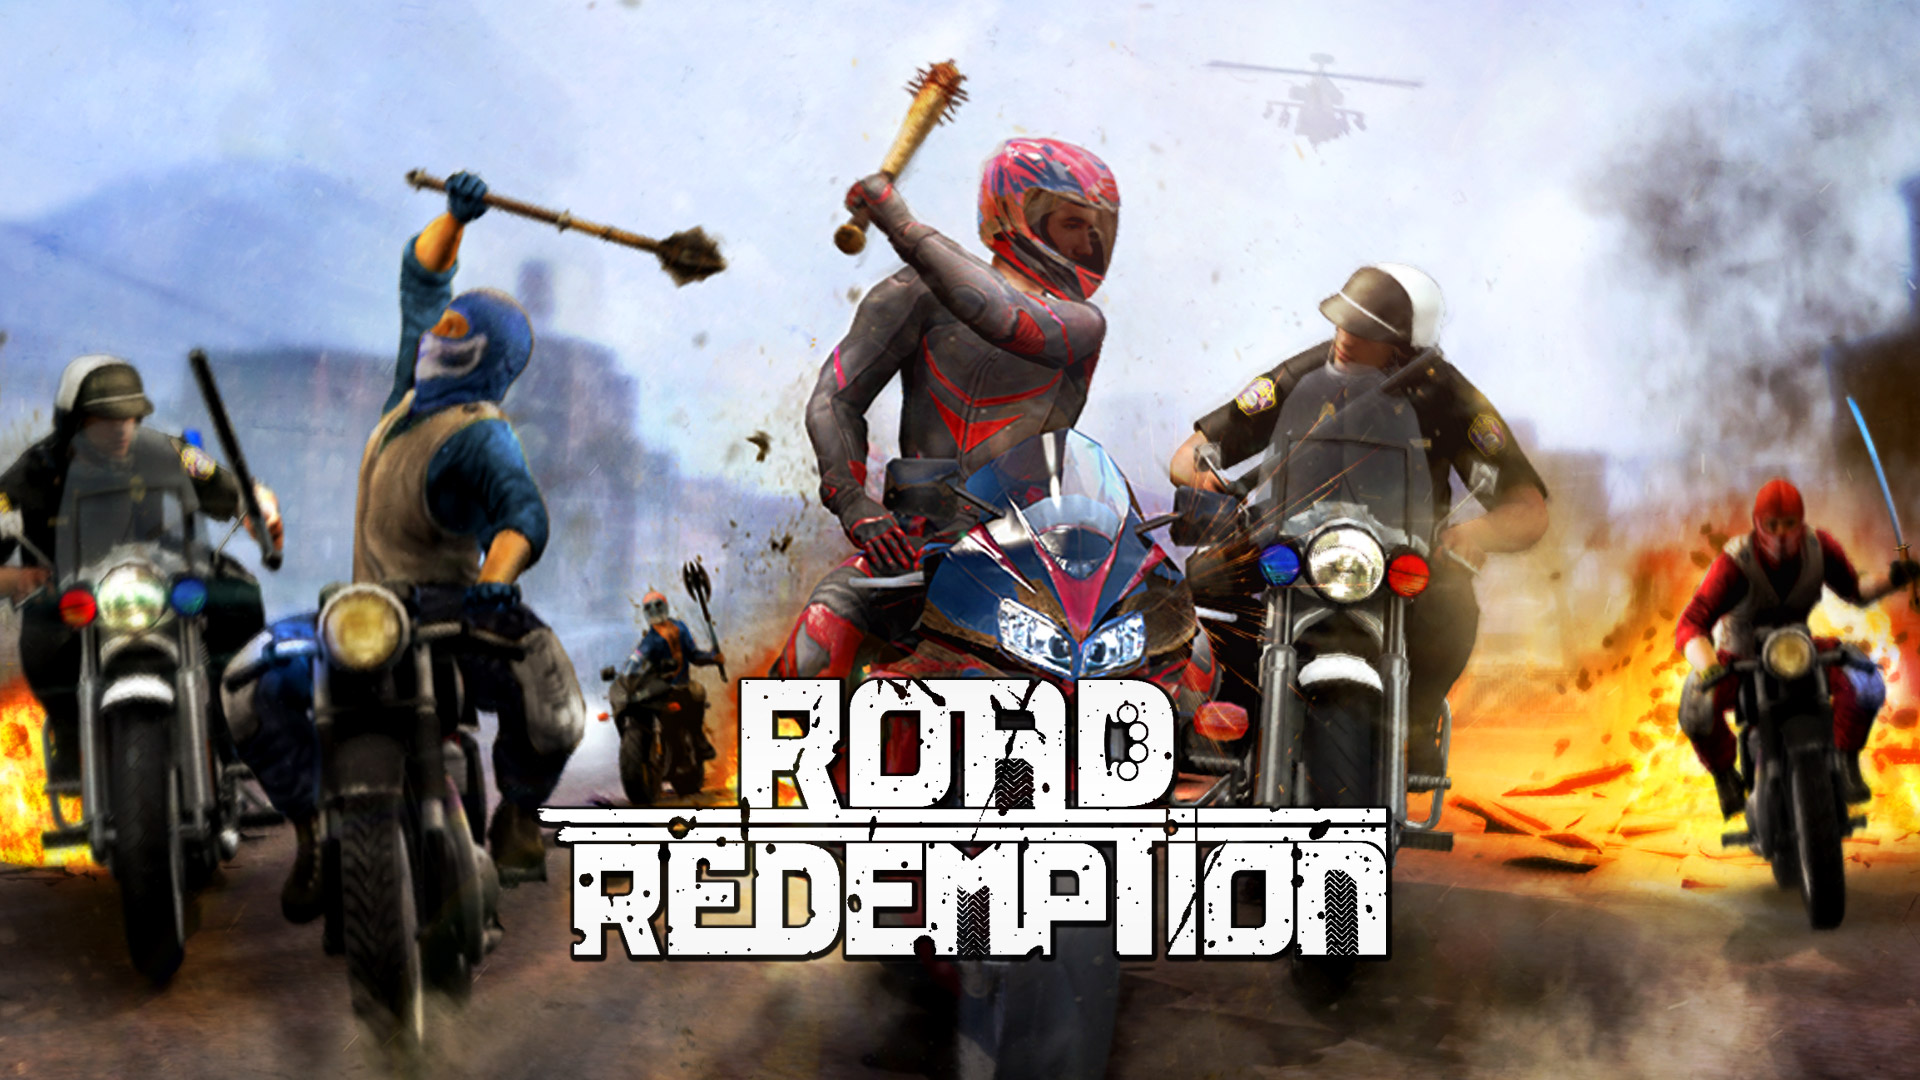 Free Road Redemption Wallpaper in 1920x1080